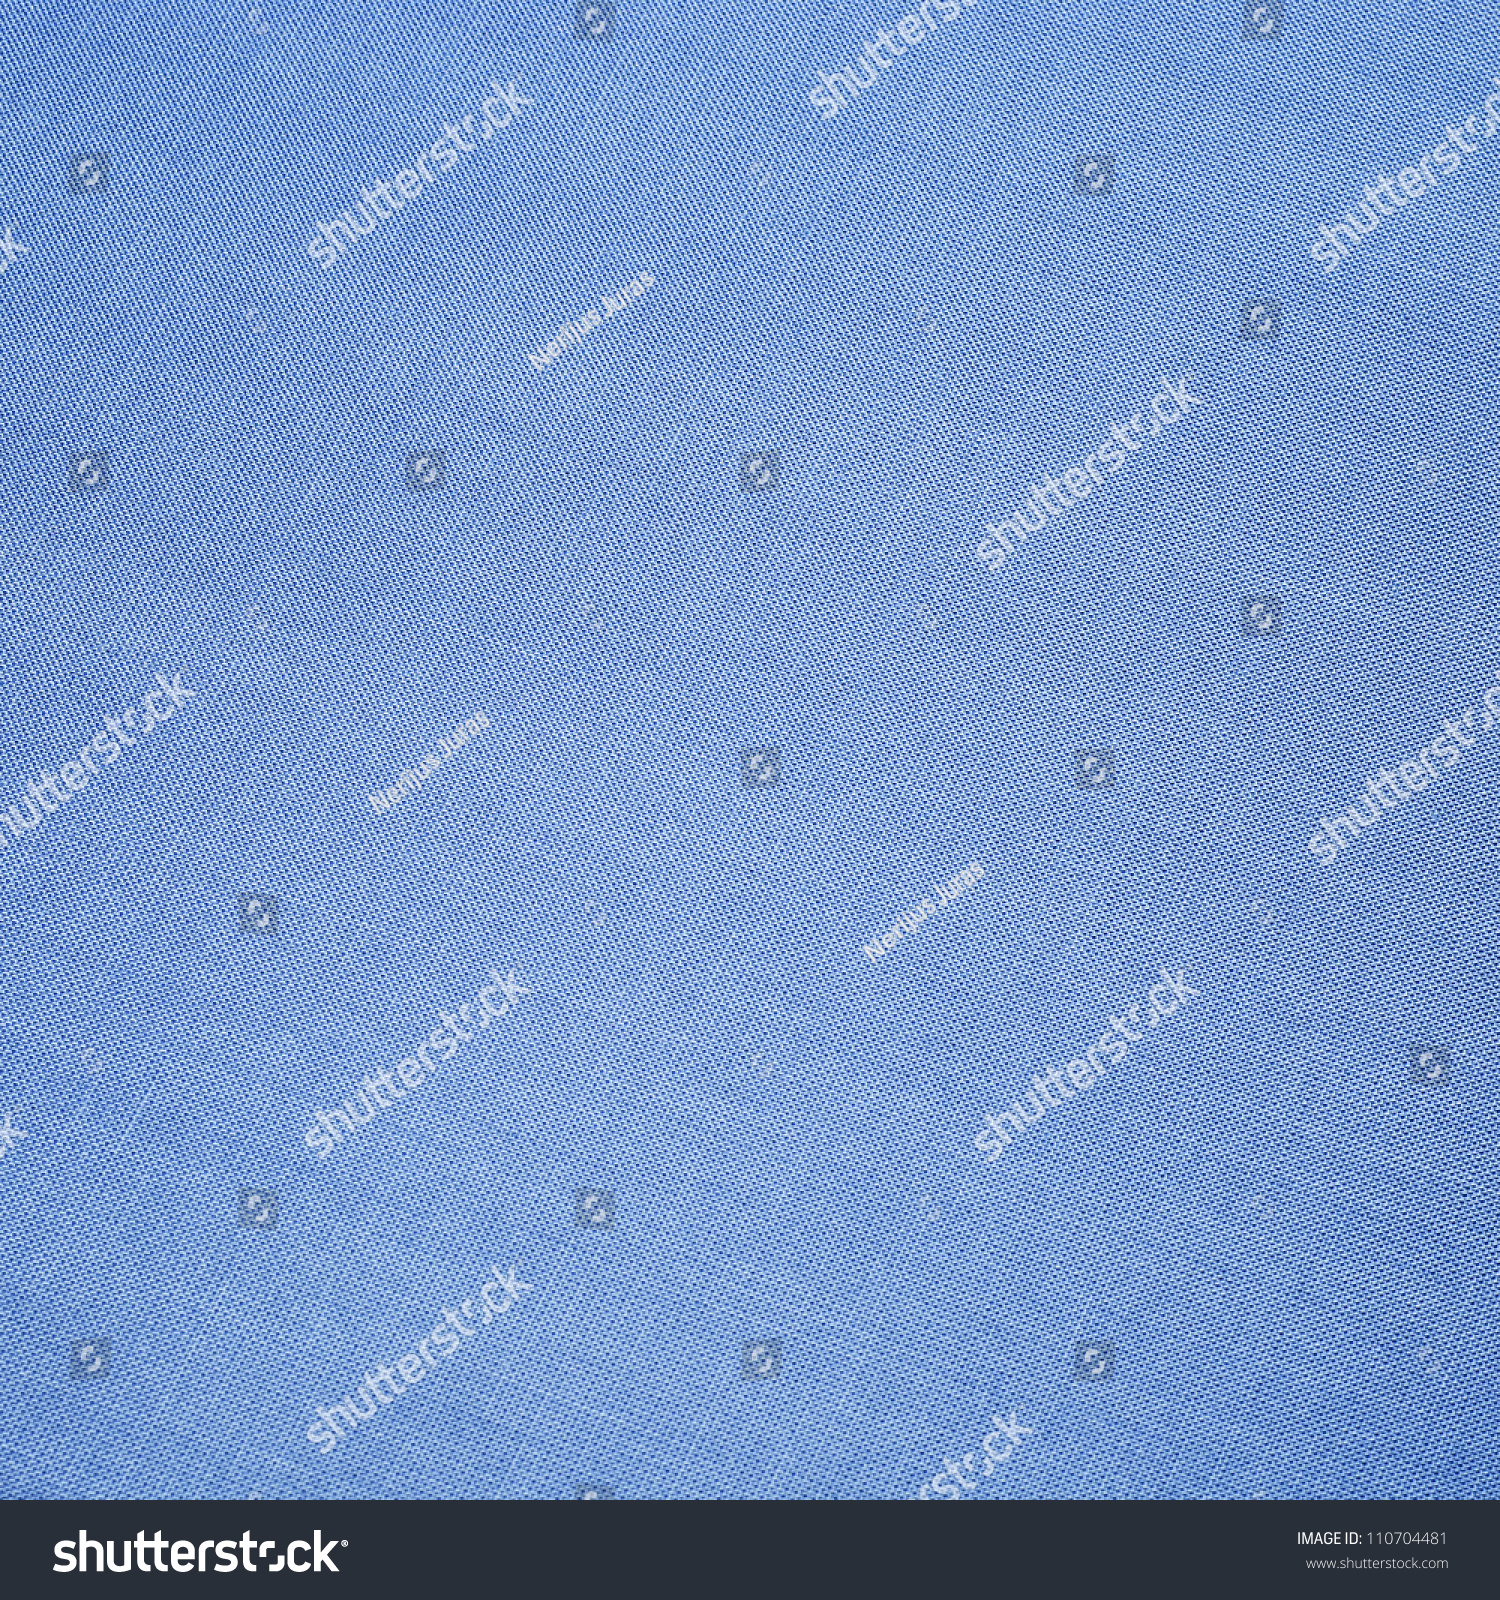 Blue Book Cover Texture : Blue cloth texture background book cover stock photo